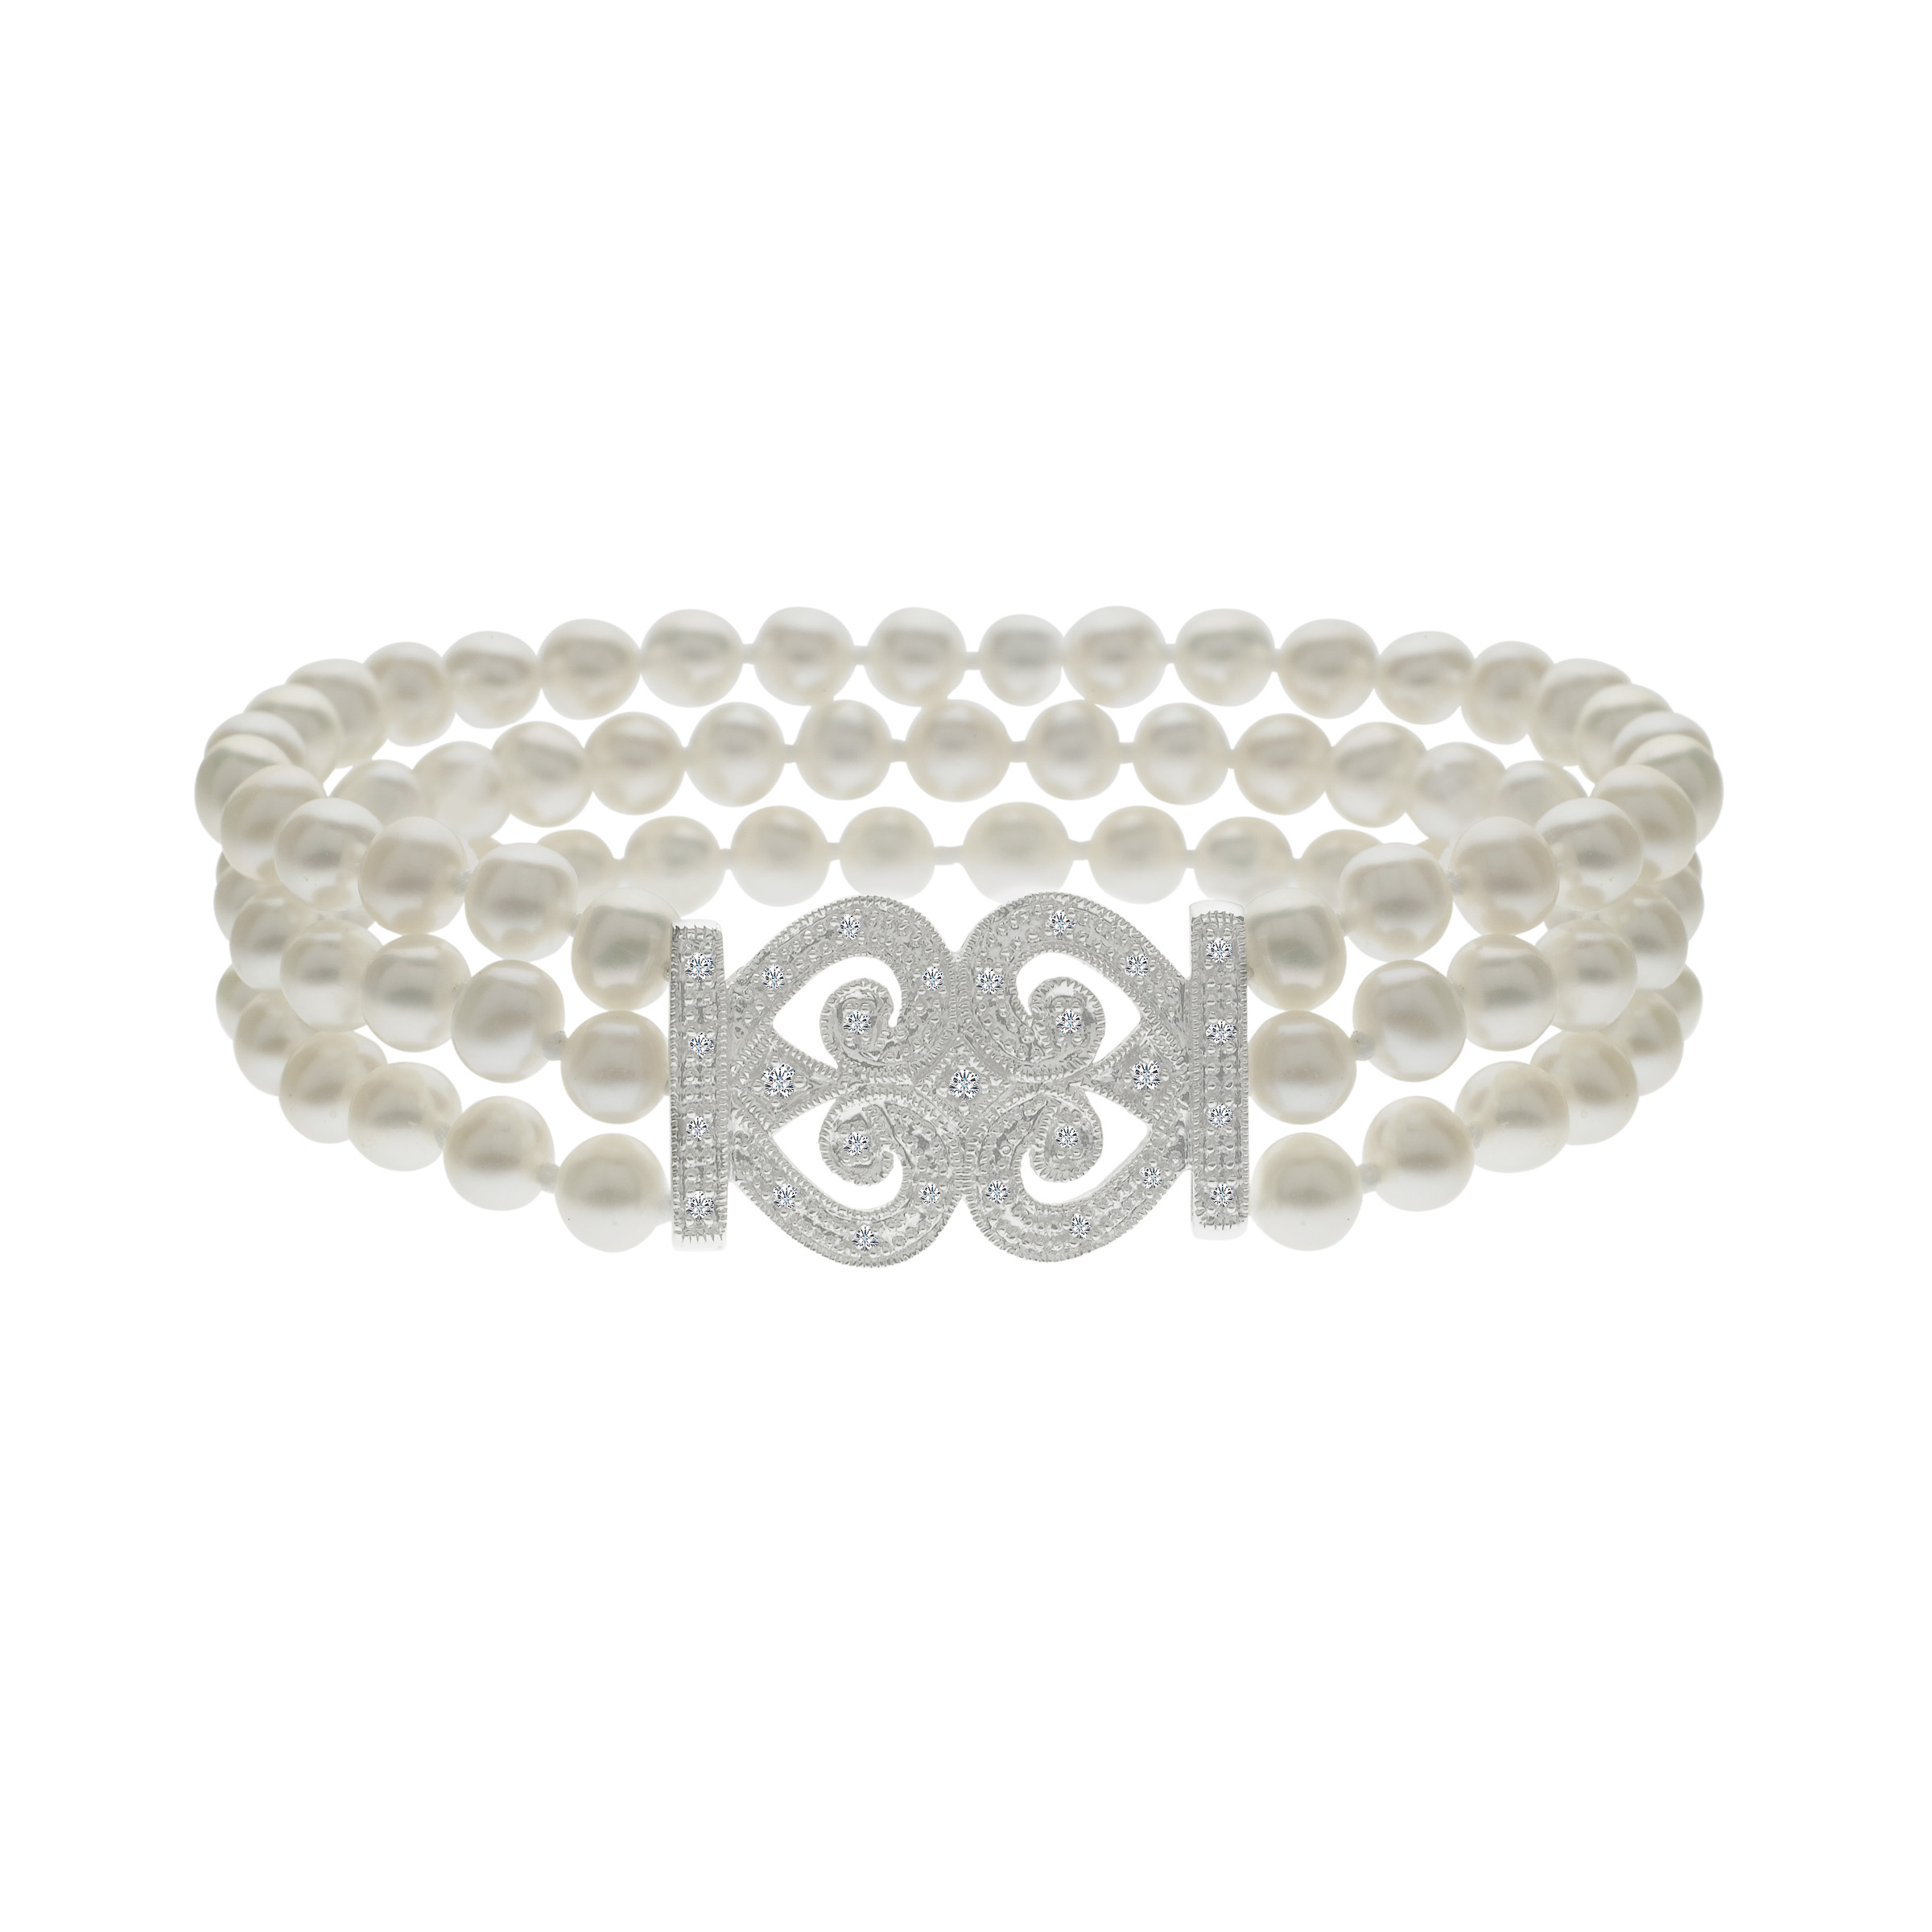 Freshwater Pearl and 1 6 ct Diamond Bead Bracelet in 14kt White Gold by Richline Group